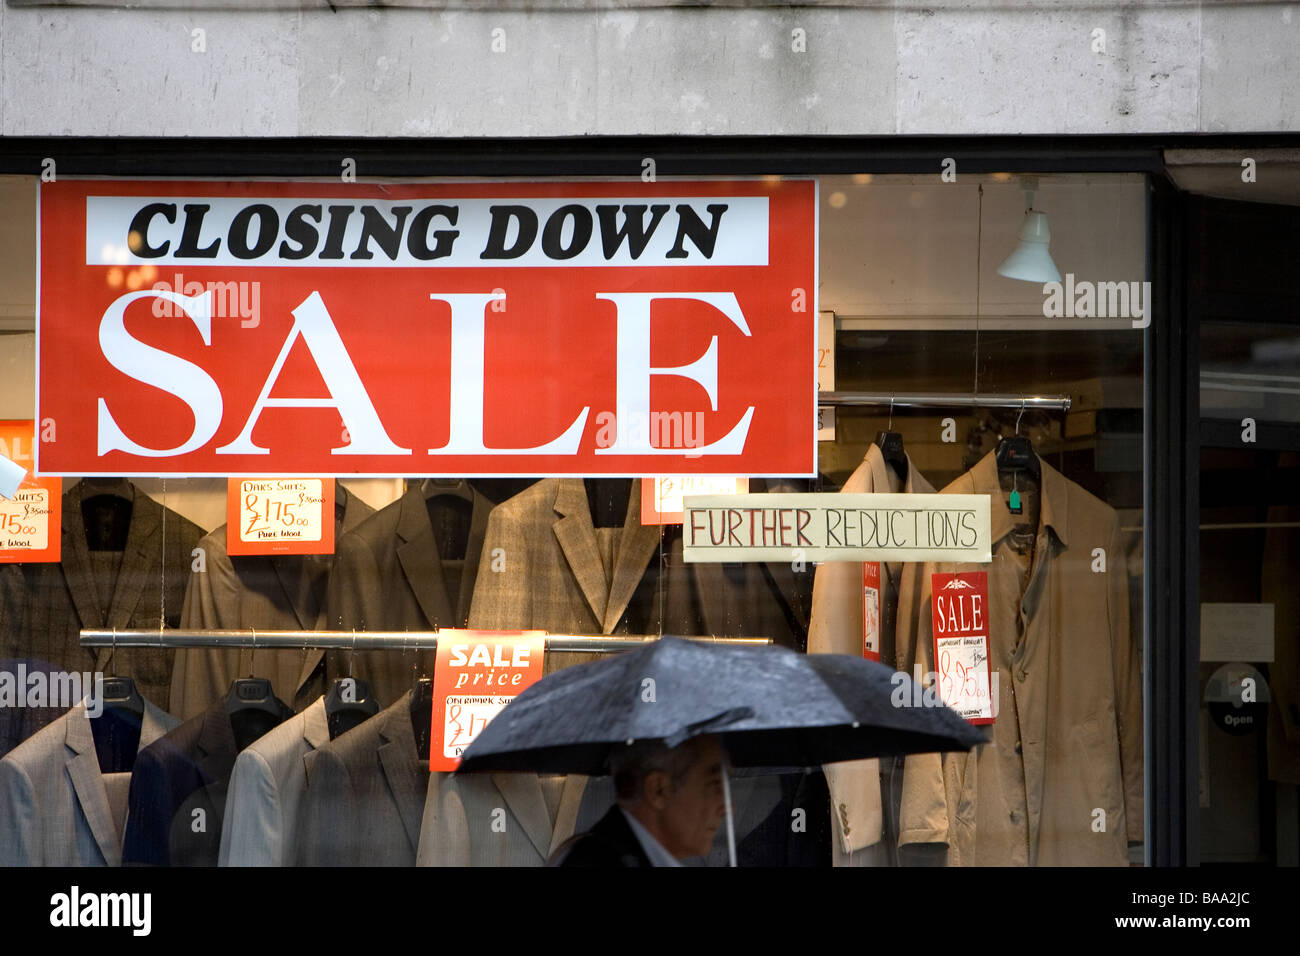 Closing Down Sale in London - Stock Image